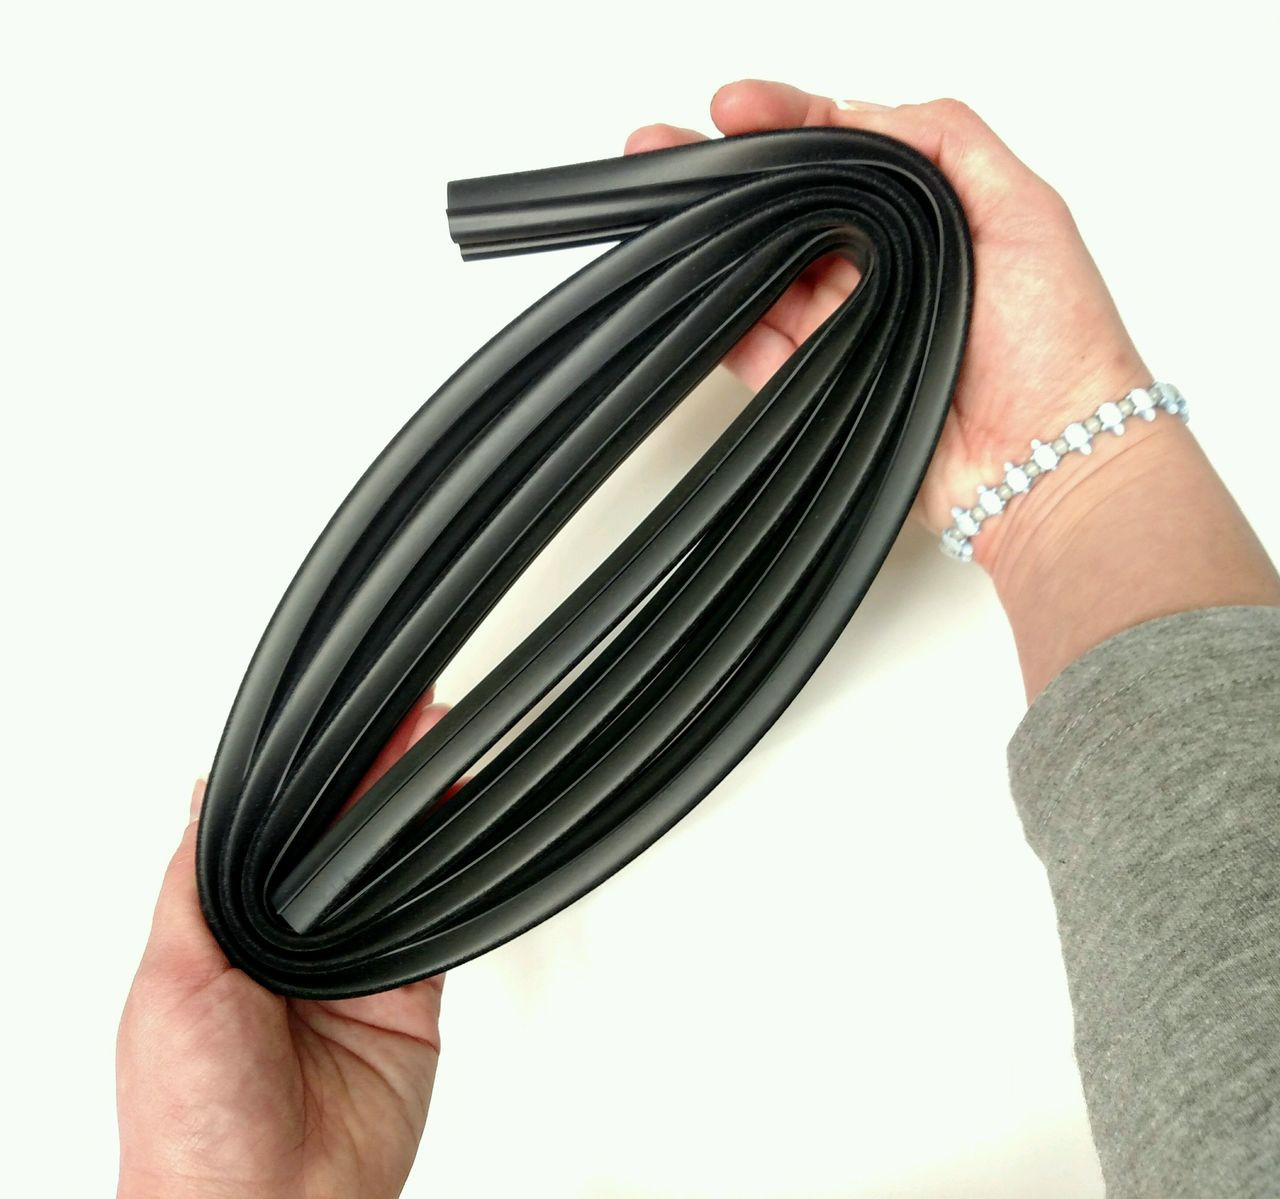 This is how flexible this All Rubber Channel is!